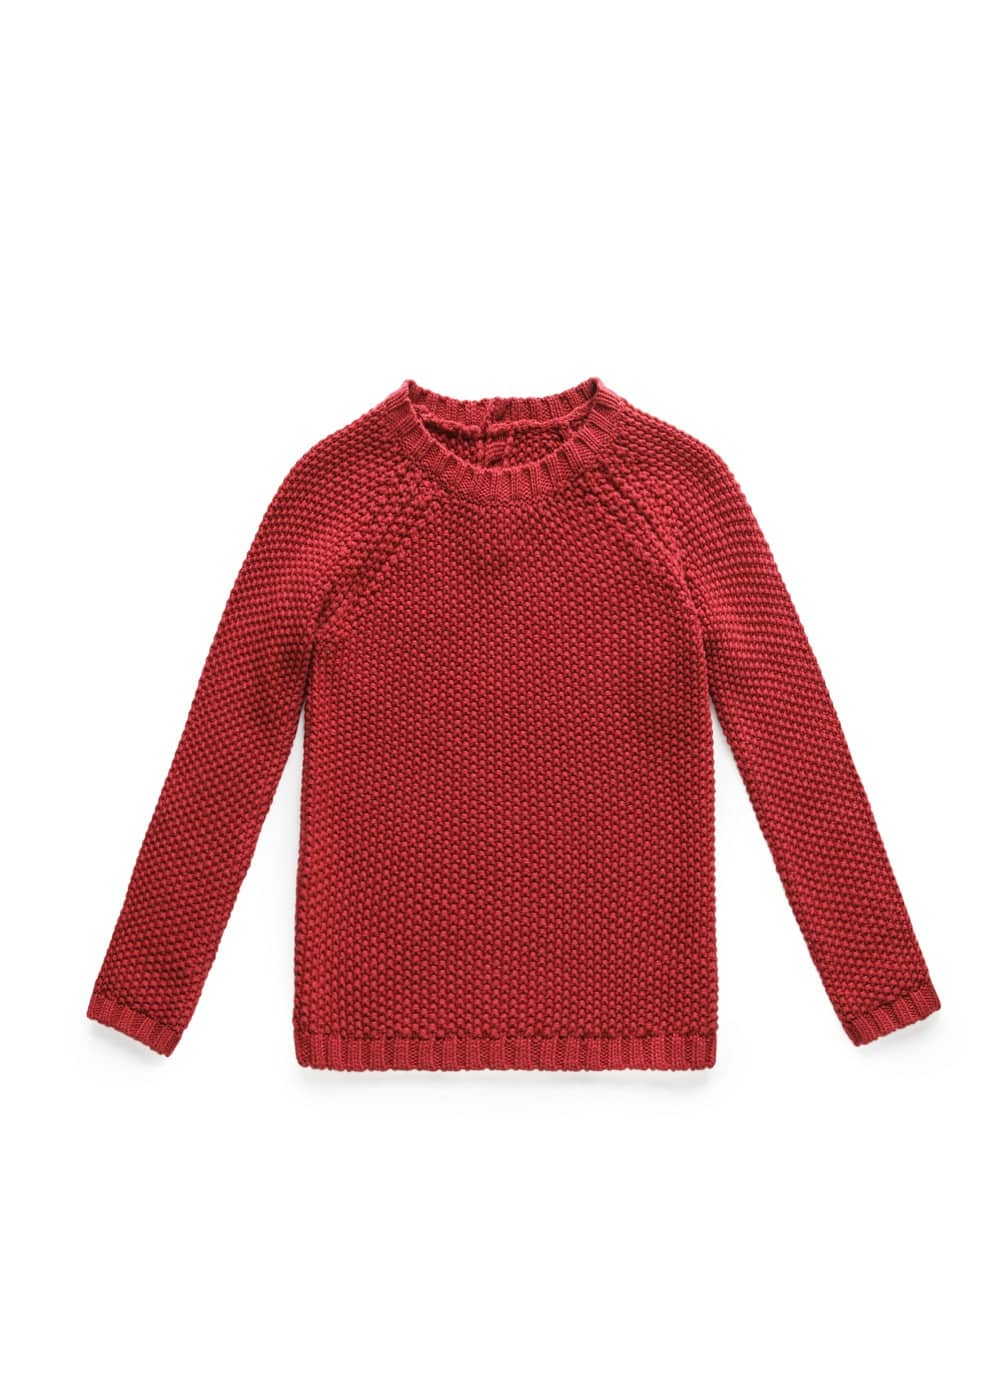 REVERSE KNIT SWEATER